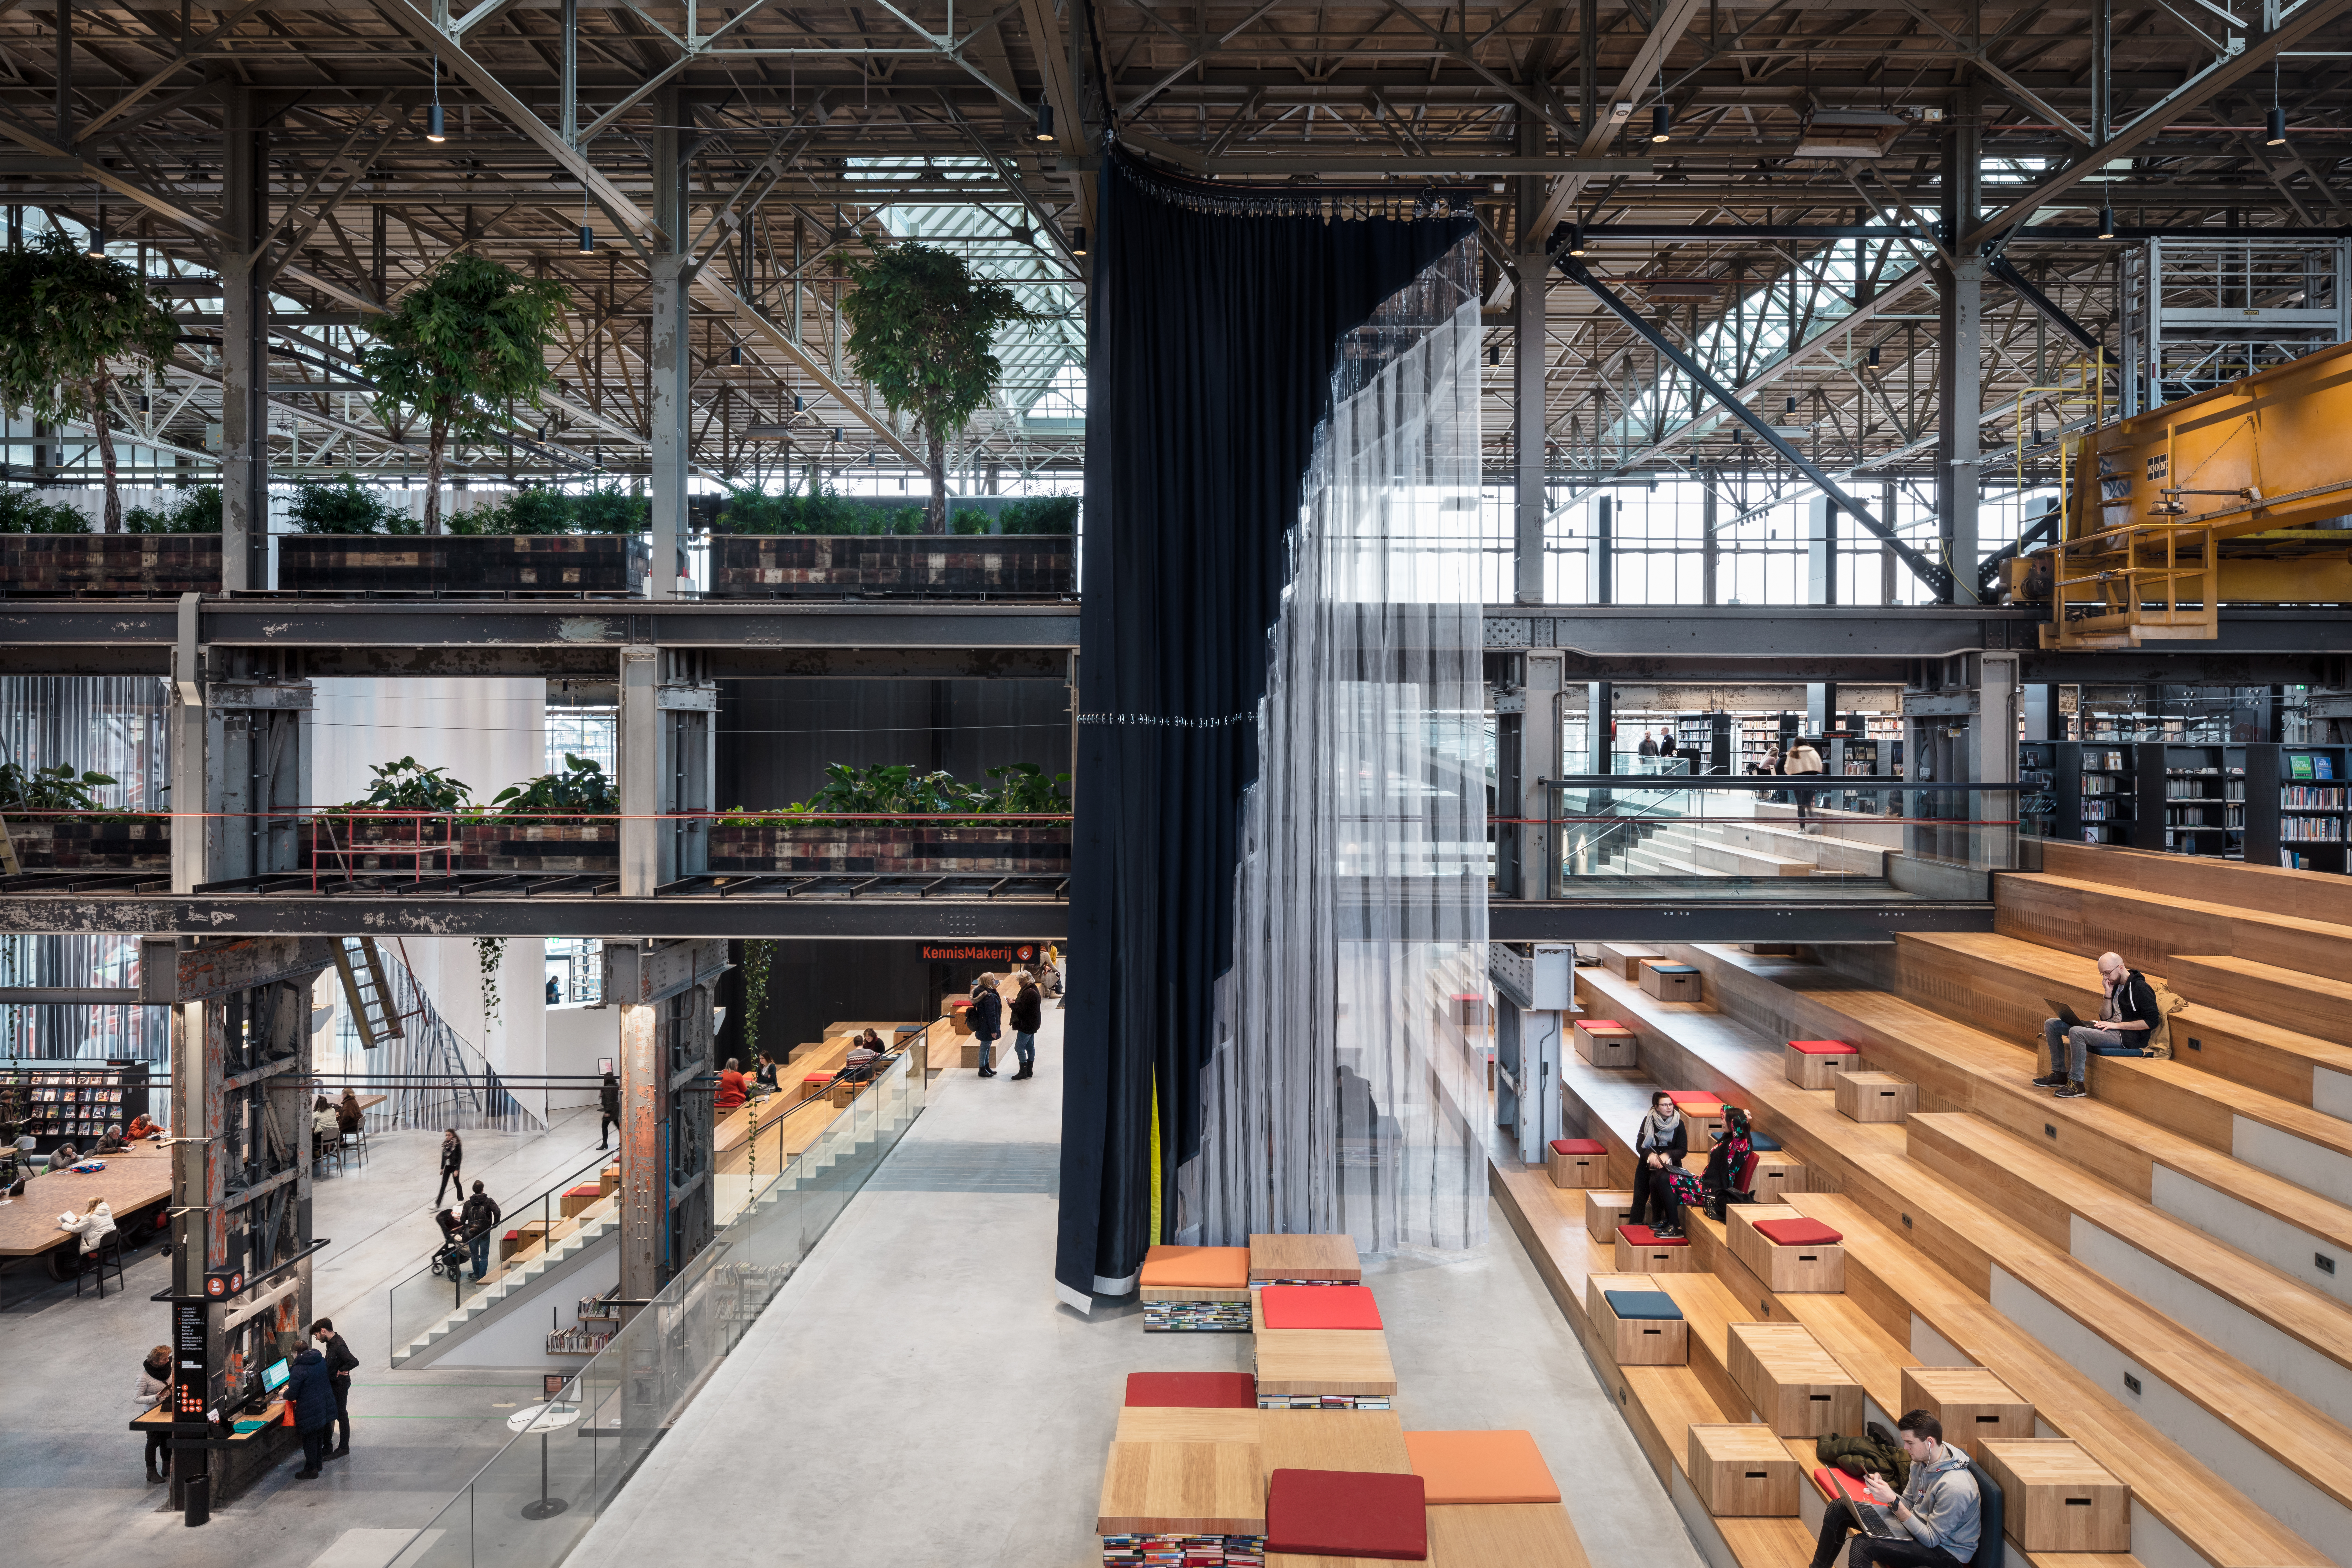 <p>LocHal Tilburg door Civic, Braaksma &#038; Roos, Inside Outside en Mecanoo is een van de genomineerden voor een WAF Award 2019 &#8211; Gerealiseerde projecten. Beeld Stijn Bollaert</p>